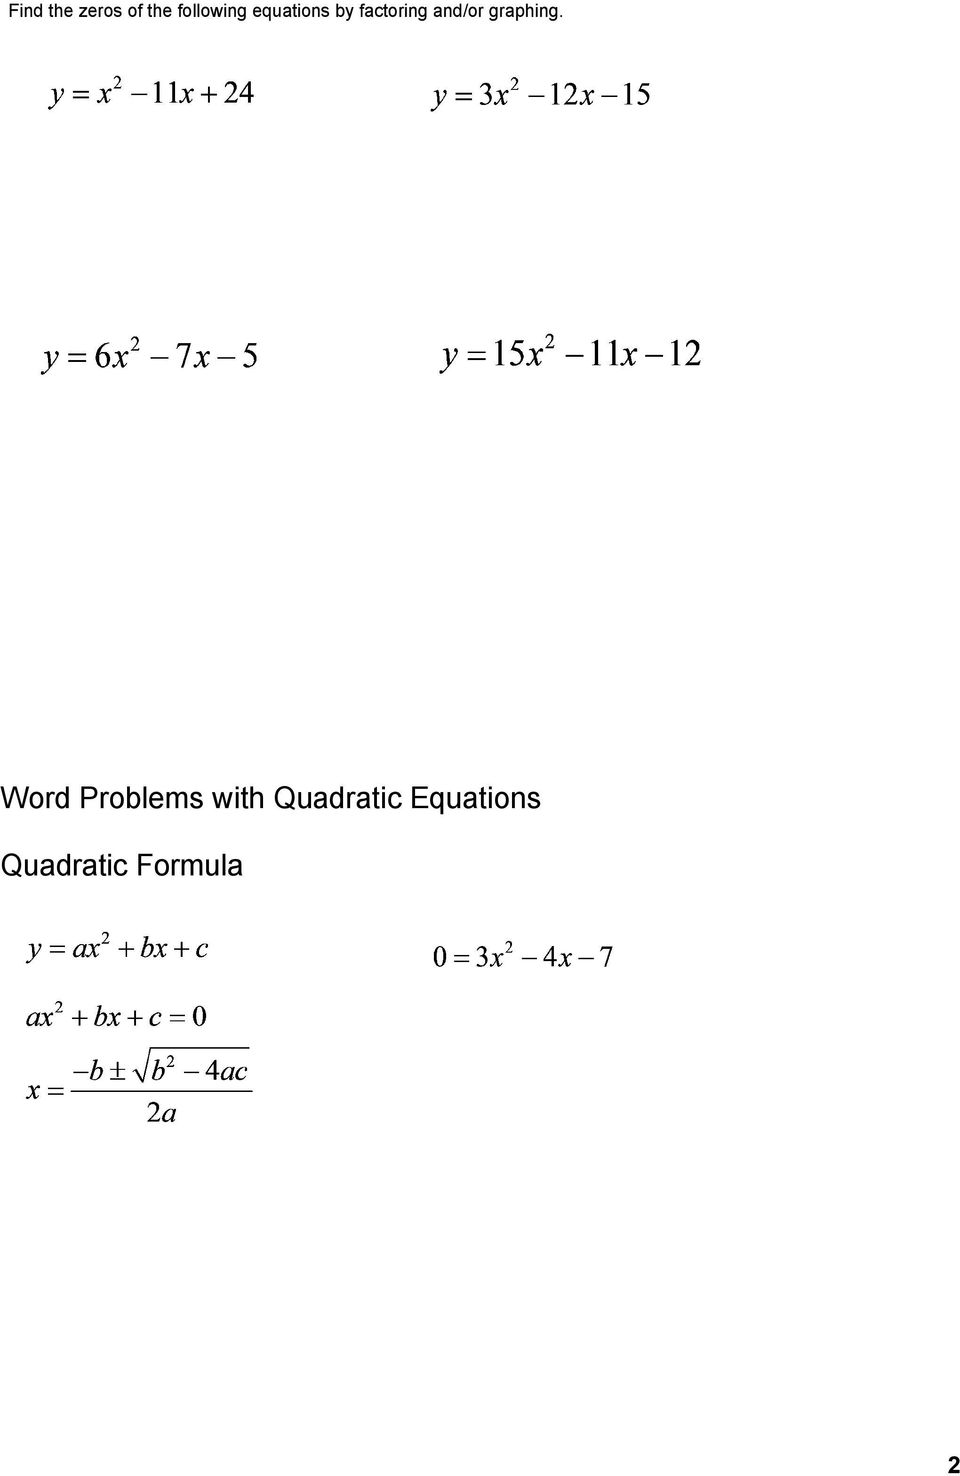 many word problems result in quadratic equations that need to be